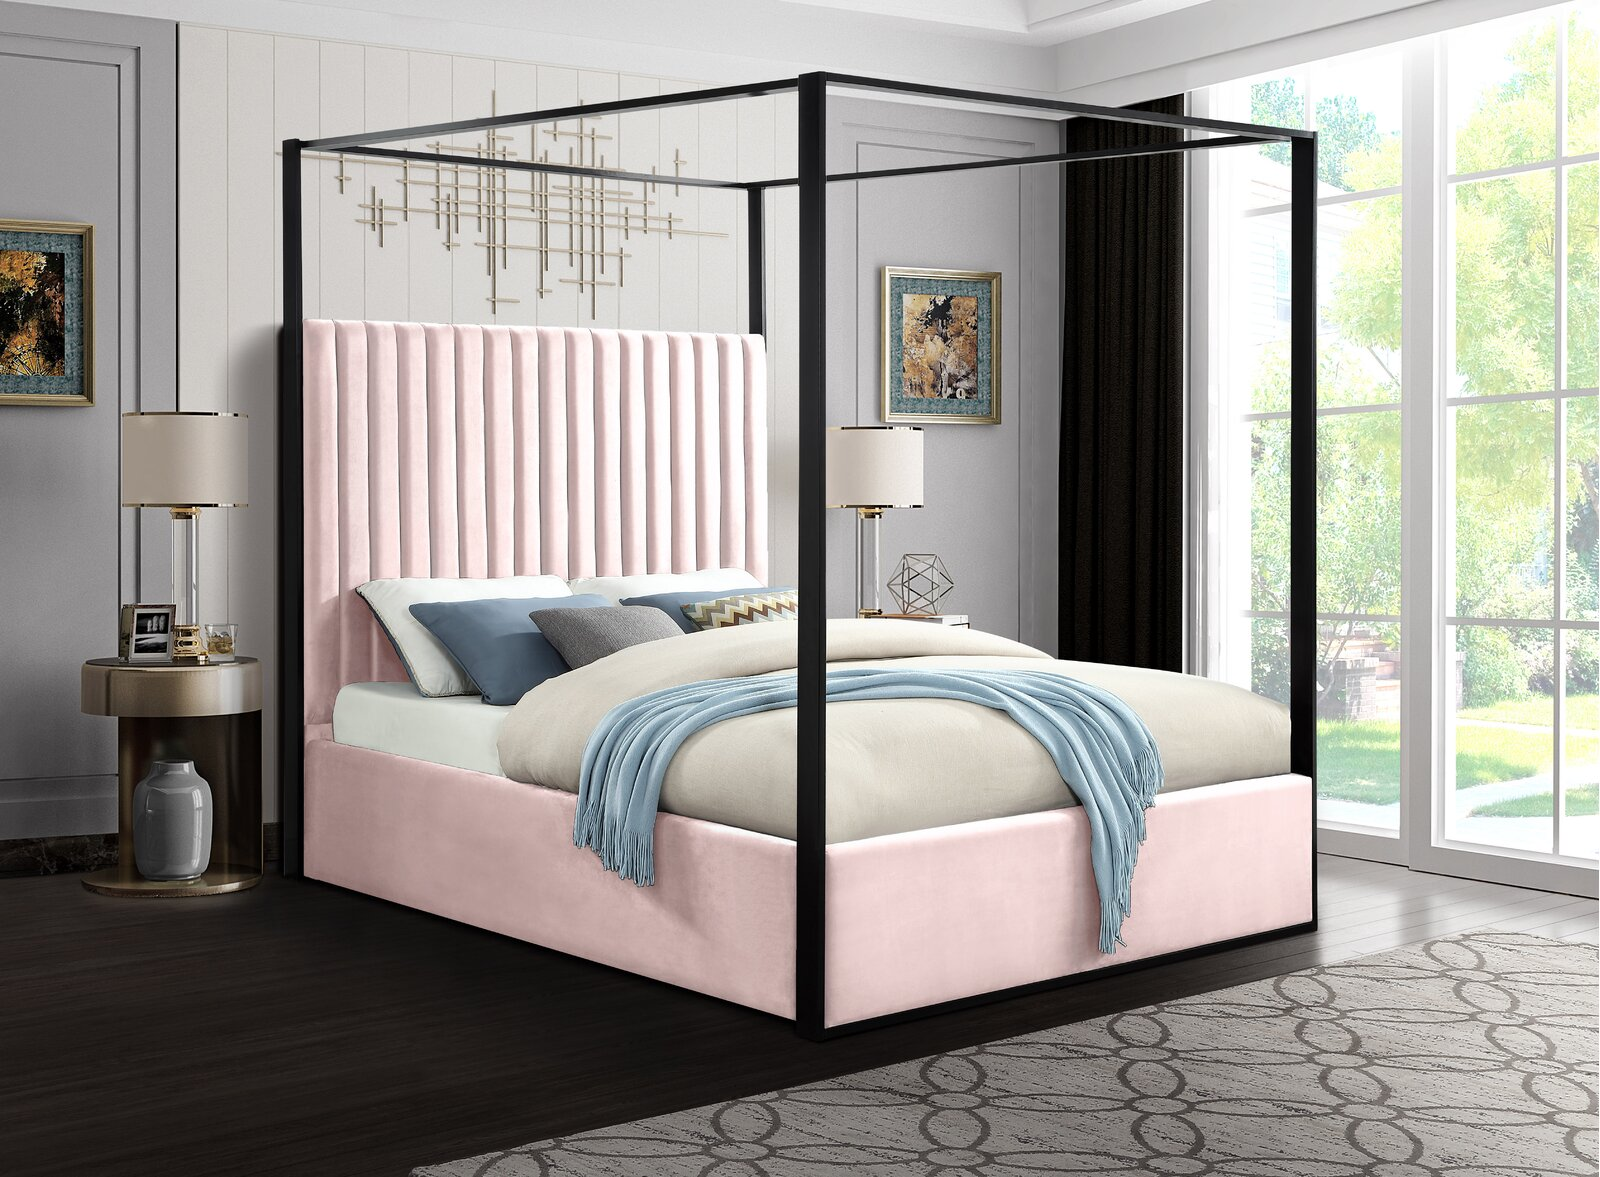 four poster canopy pink upholstered bed